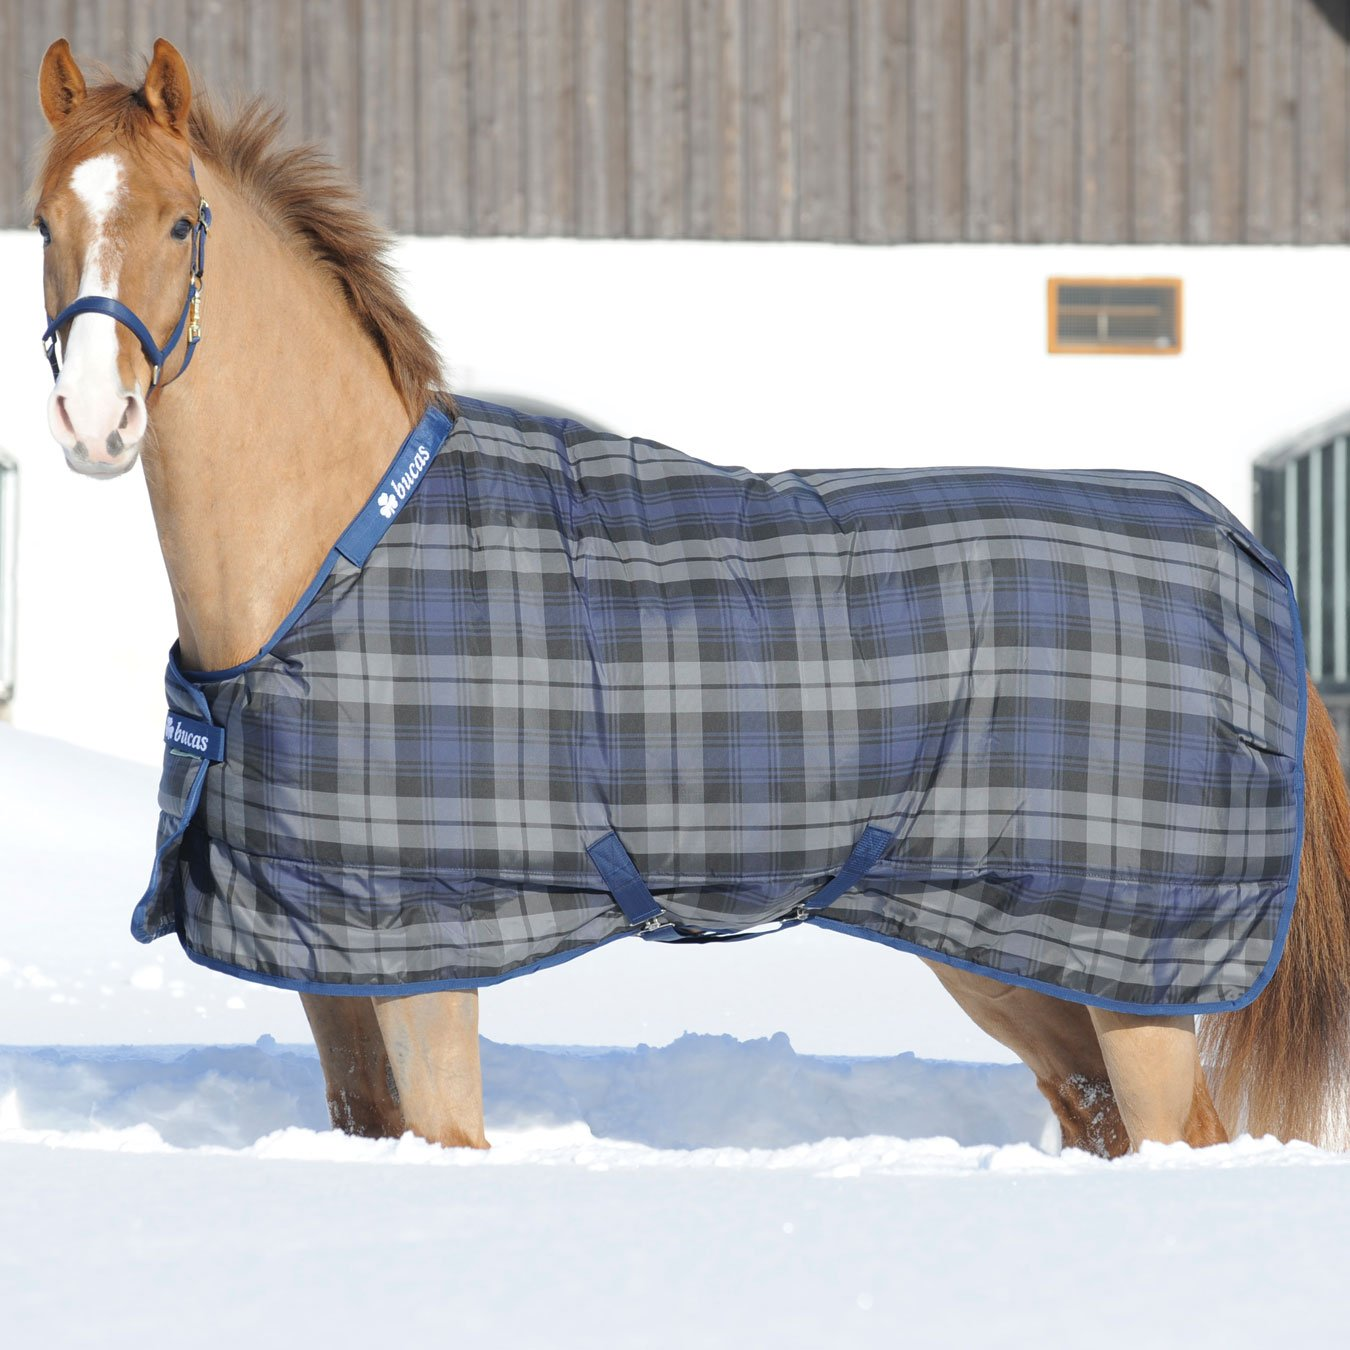 7'0 Bucas Celtic Heavyweight (300g) Check Stable Rug